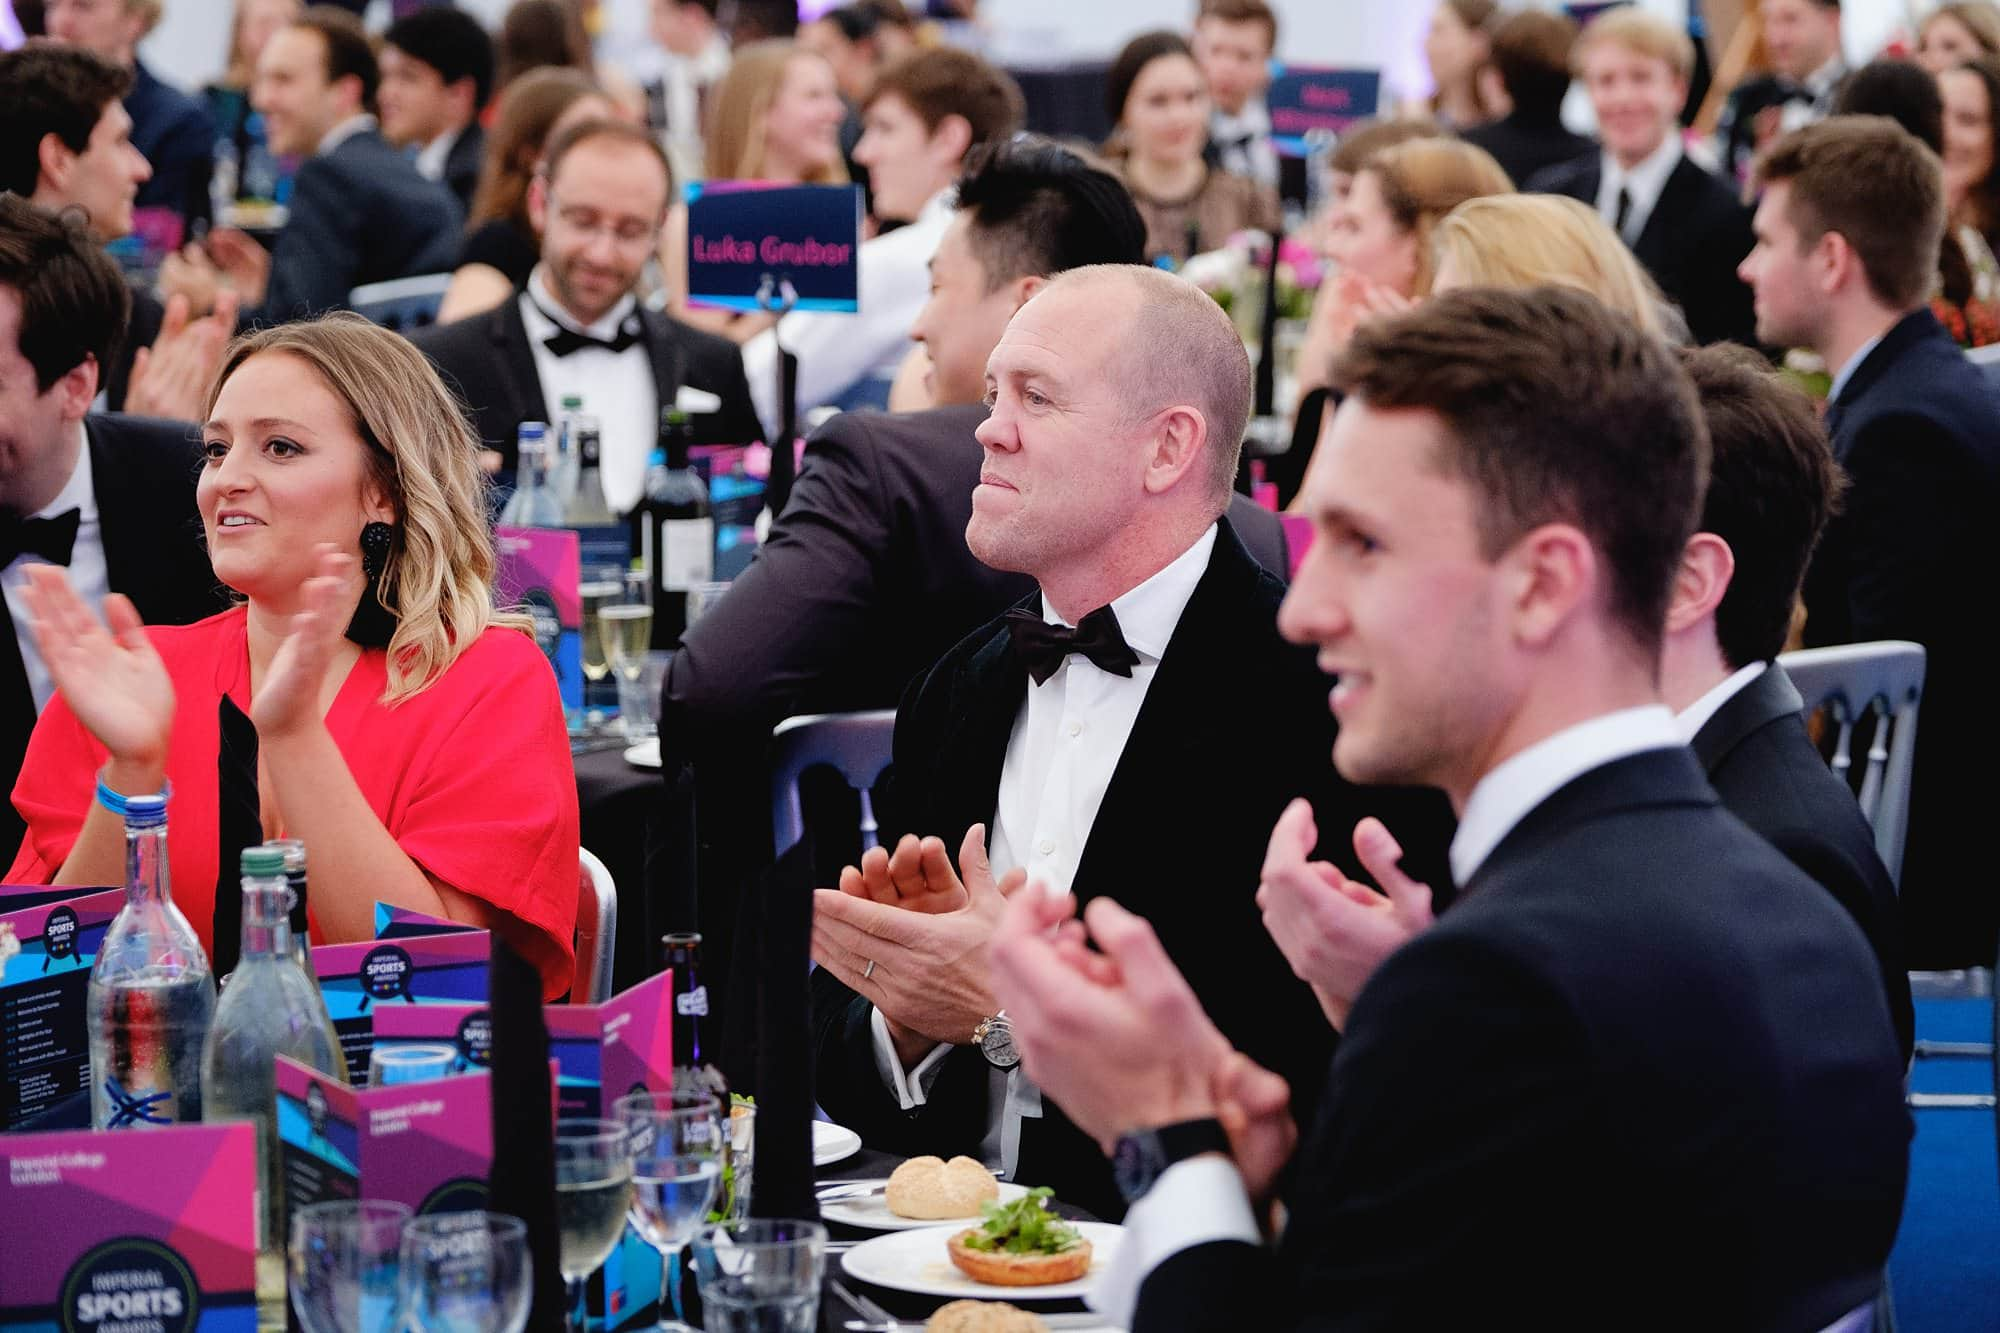 event photographer london icl 2017 011 - Imperial College London Sports Awards 2017